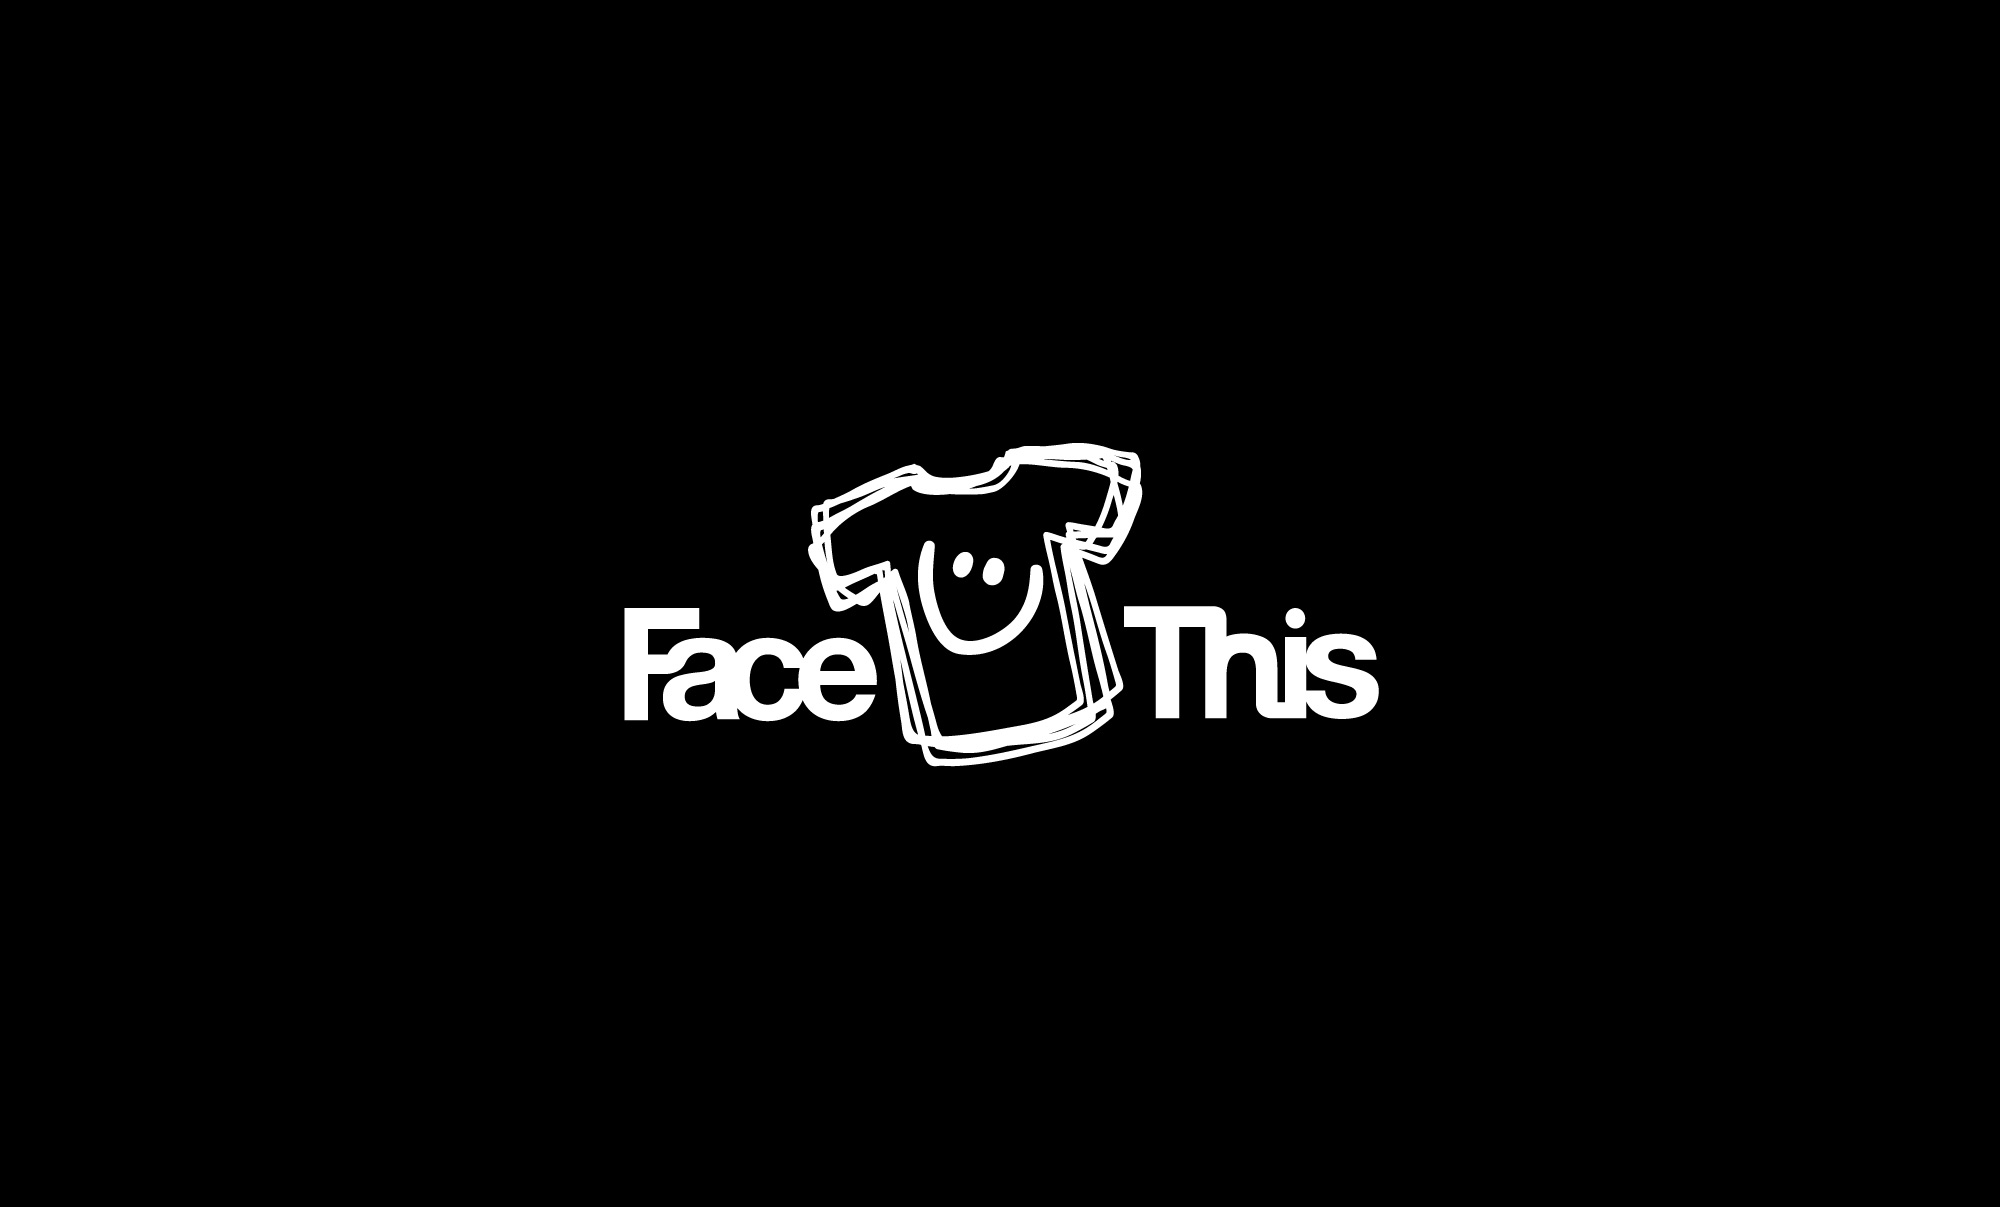 Face This logo